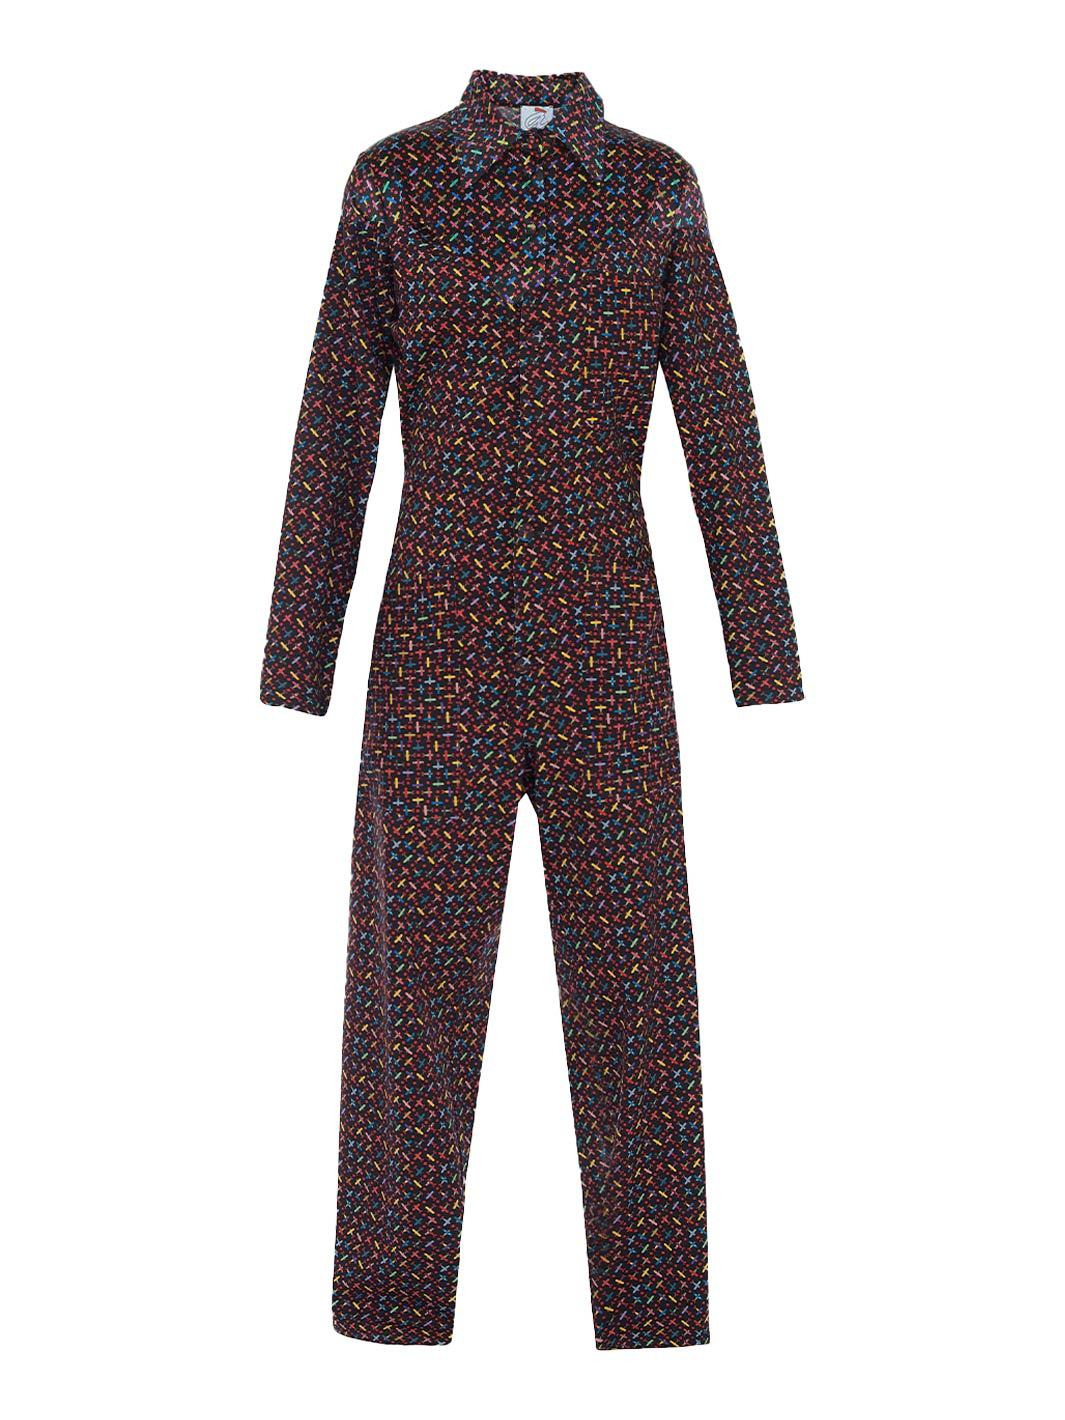 Airplanet Print Wool Jumpsuit - The Bobby Boga